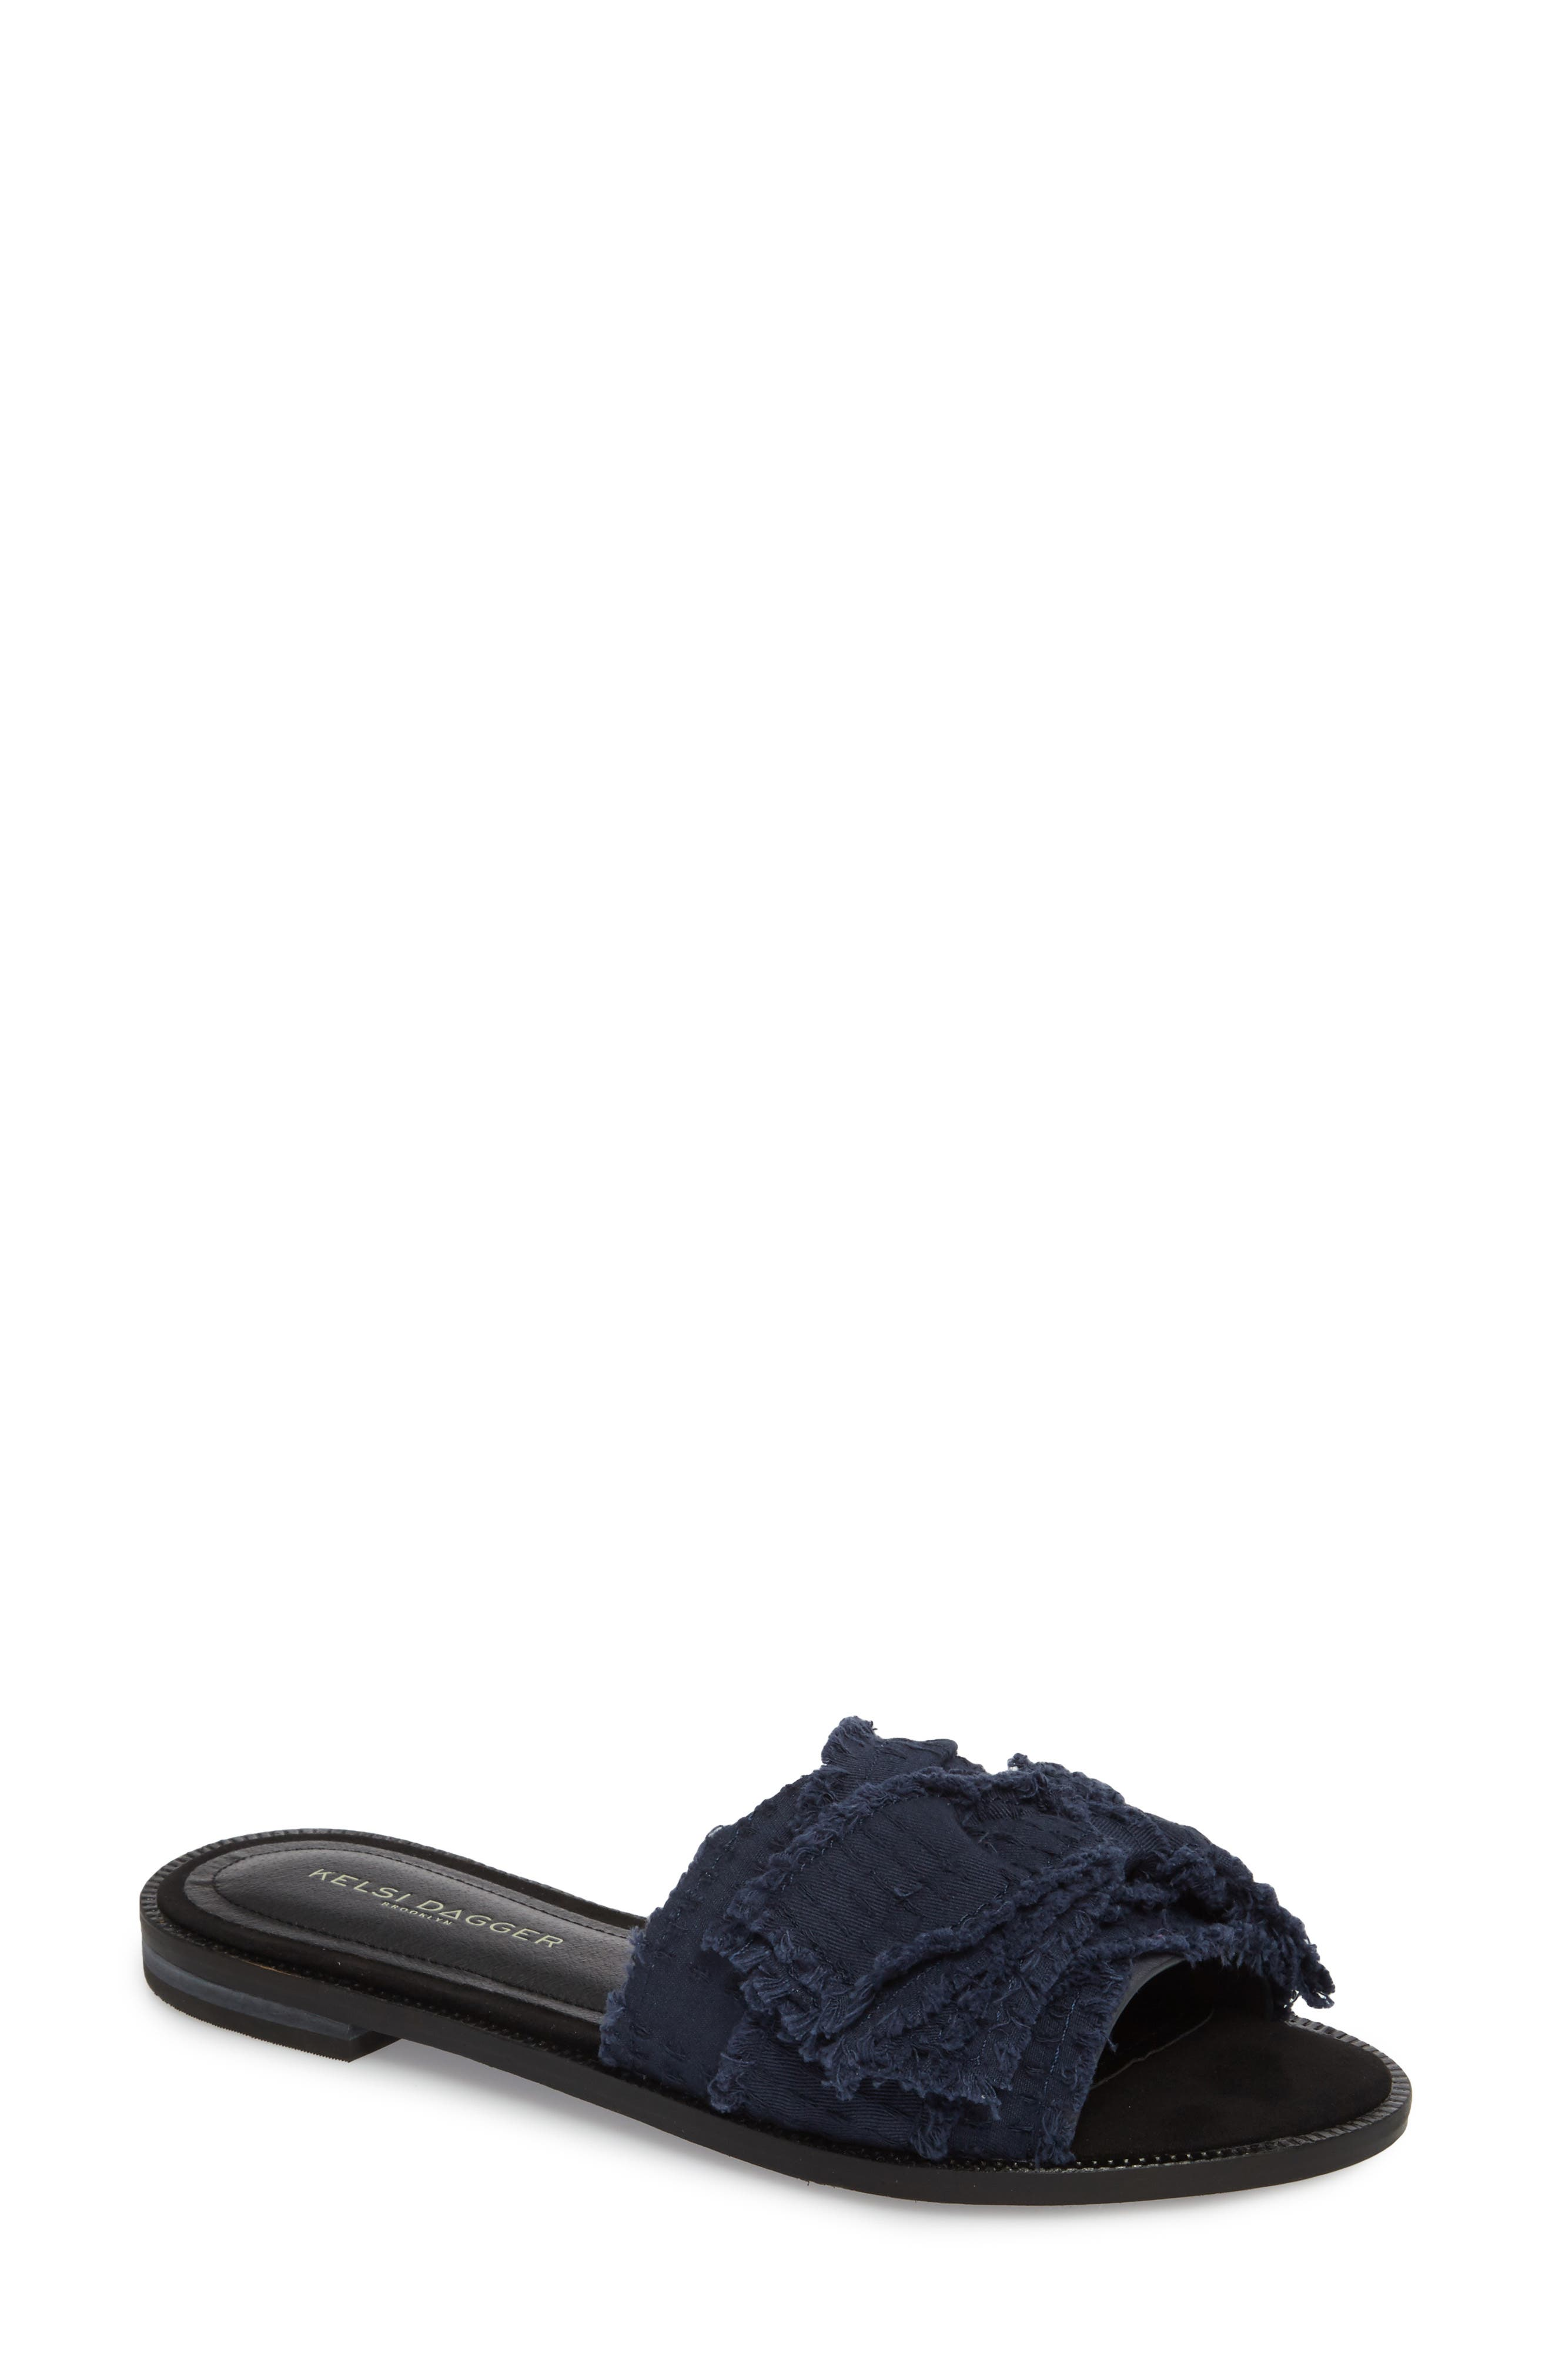 Revere Bow Slide Sandal,                             Main thumbnail 1, color,                             BLACK/ NAVY LEATHER